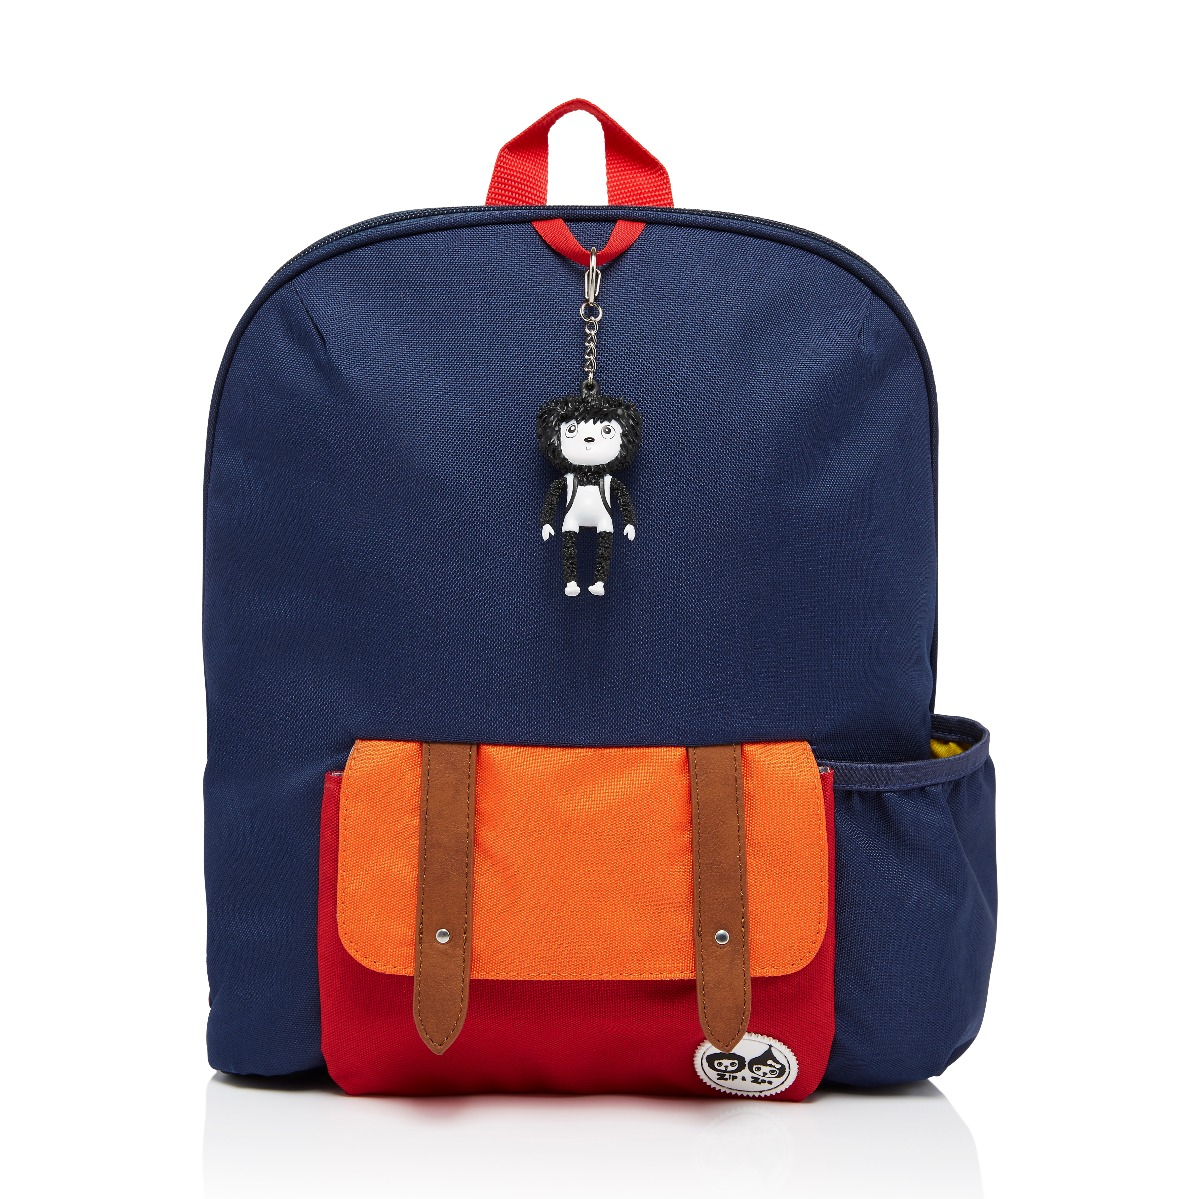 Zip and Zoe Midi Kid's Backpack (3-7Y) Navy Colour Block